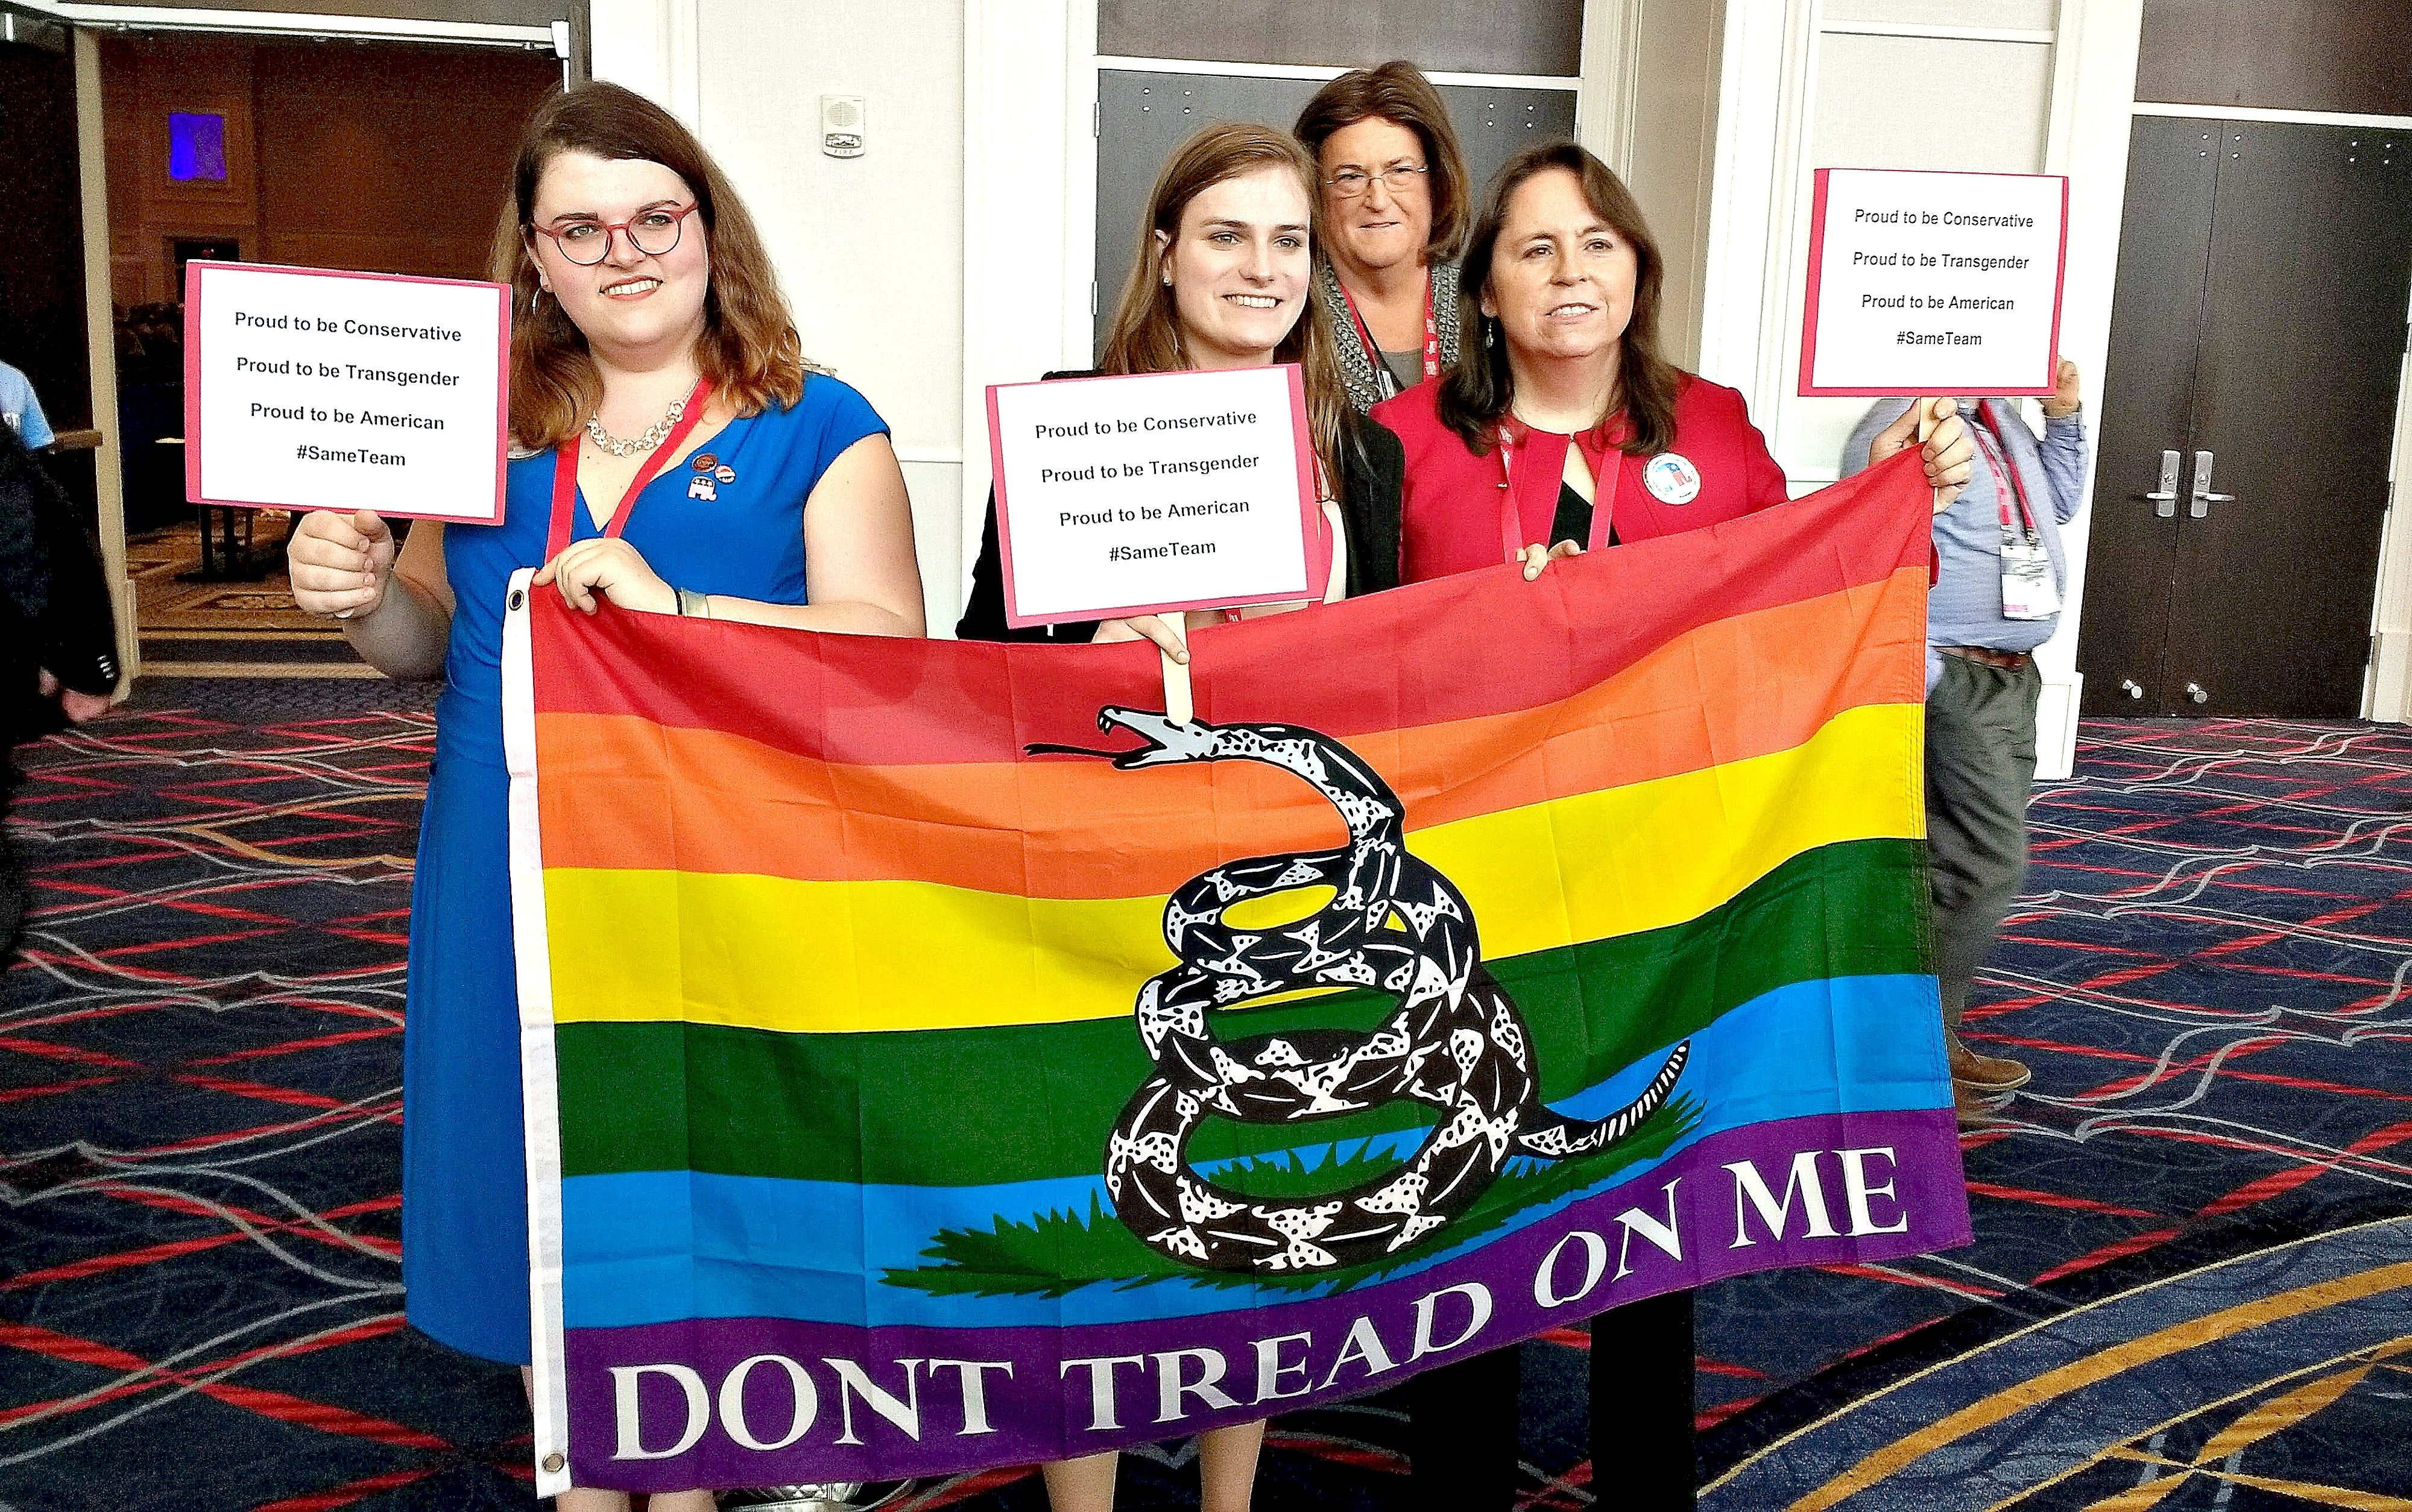 Jennifer Williams of Trenton, New Jersey (pictured far right, above) was with a small group of transgender CPAC attendees